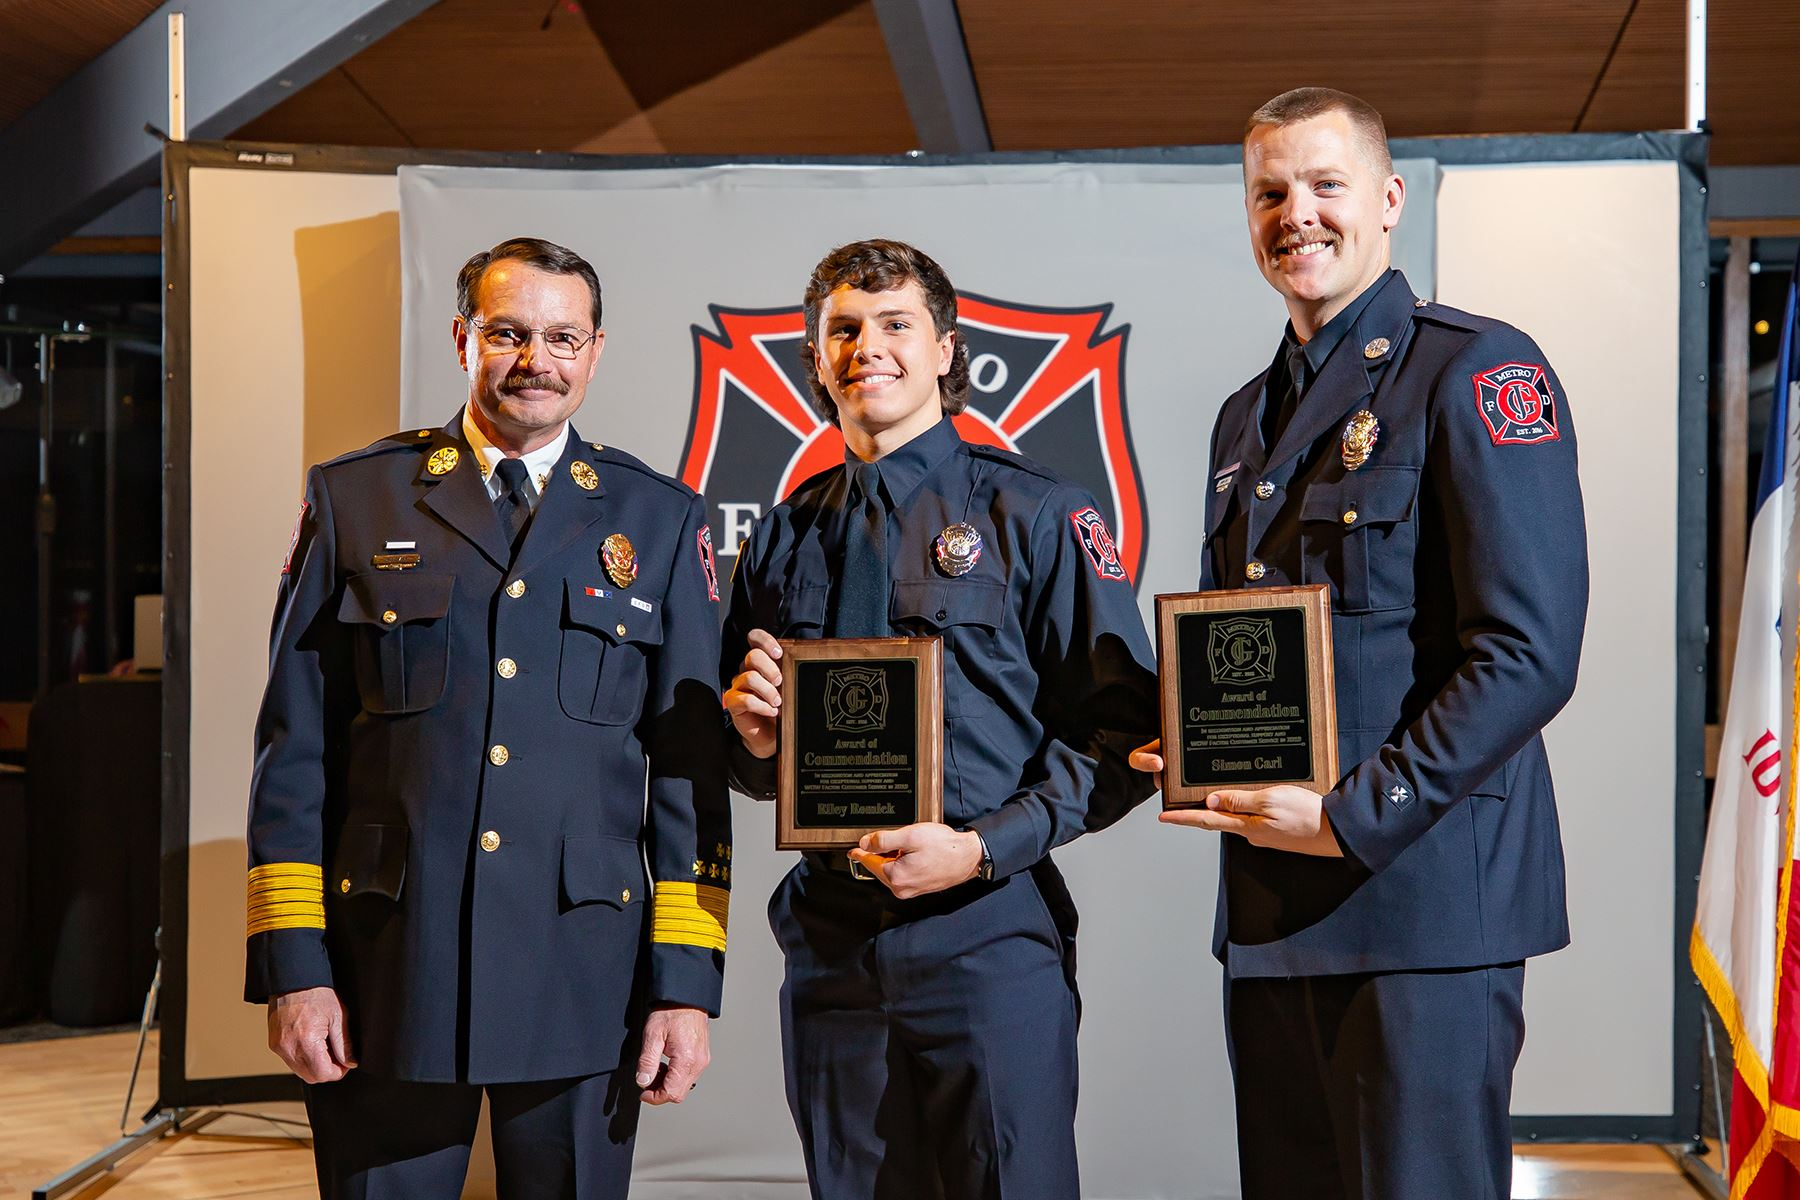 Award of Commendation_Chief Clark_Riley Romick_Simon Carl_1_1800x1200